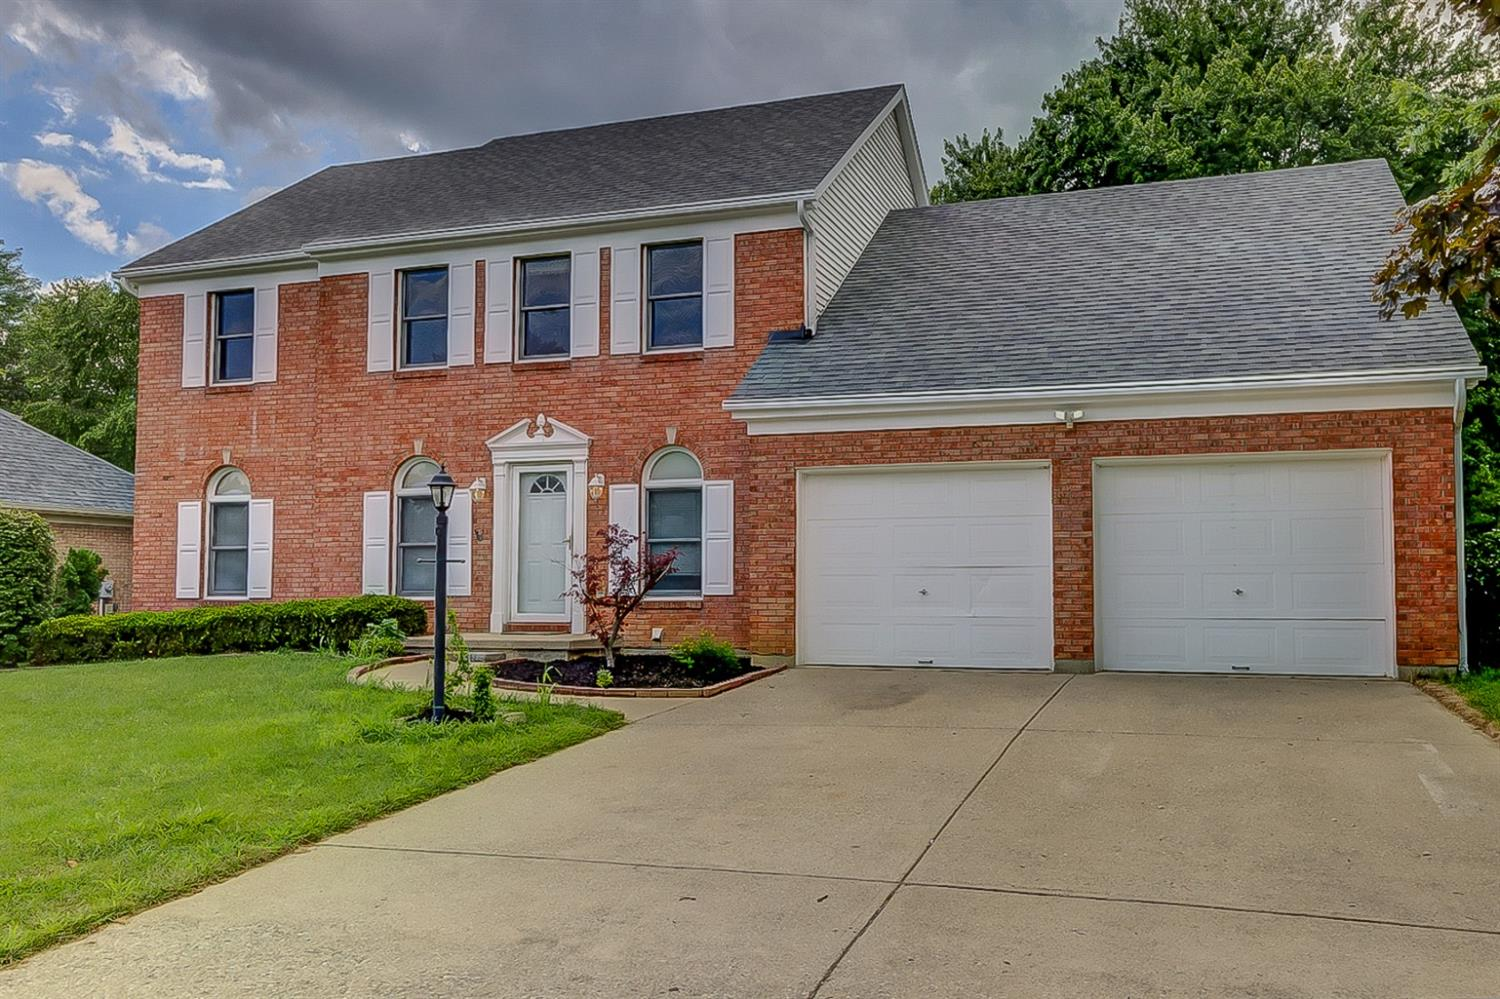 Property for sale at 11323 Donwiddle Drive, Sycamore Twp,  Ohio 45140